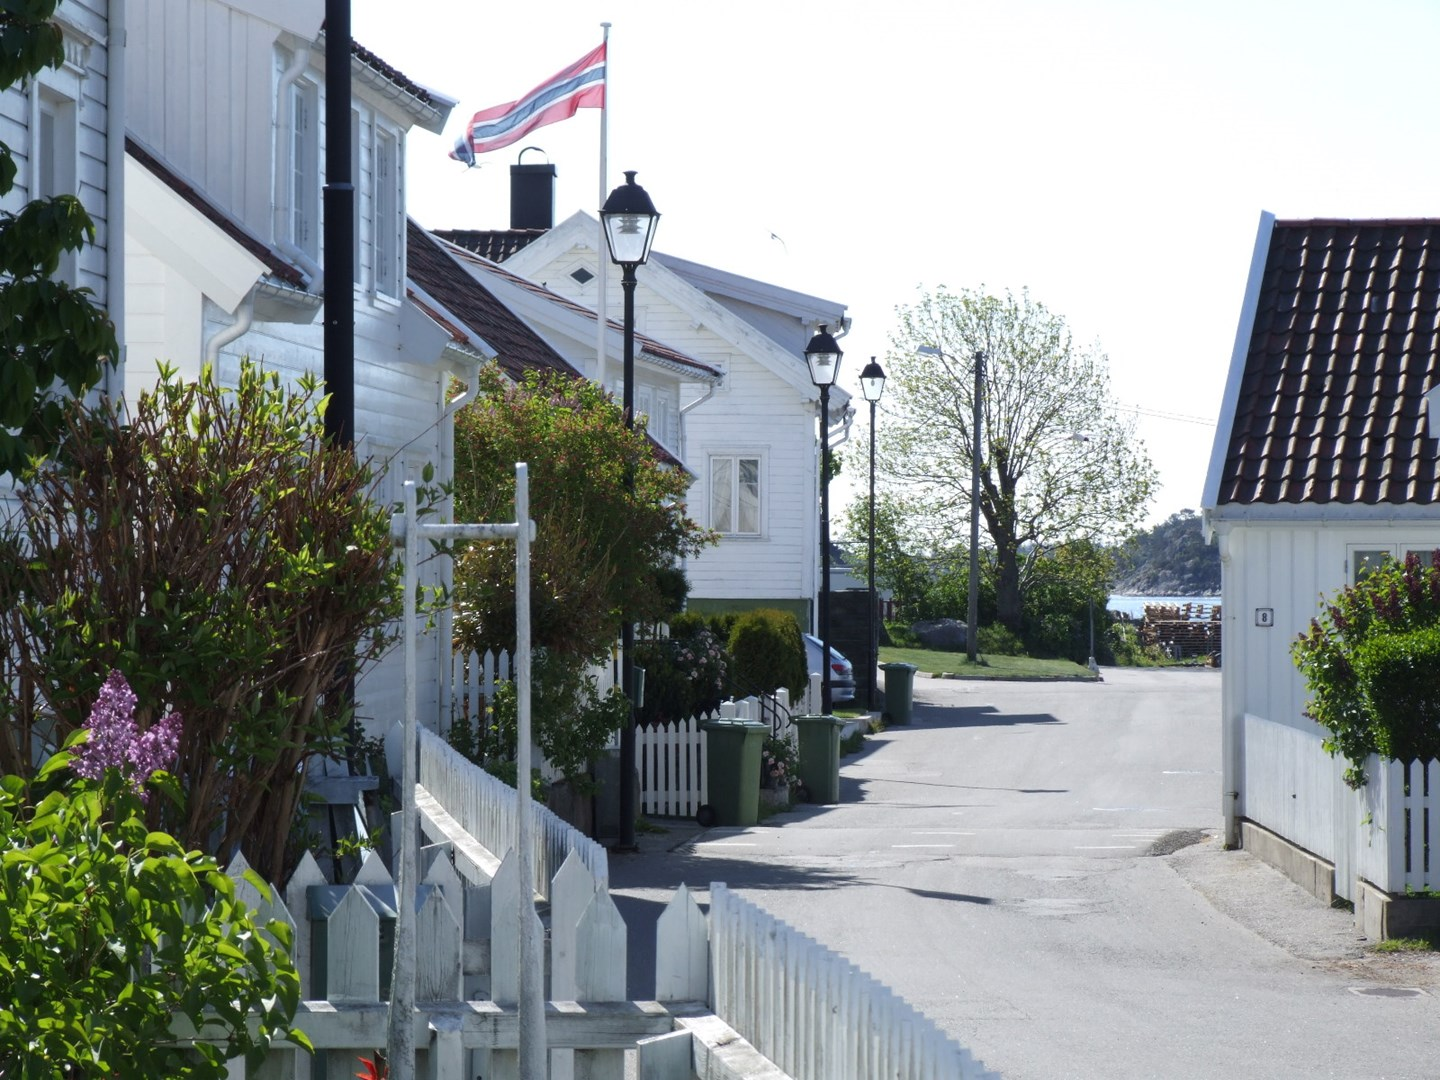 Lillesand Hotel in Norway - Historic hotels in Norway